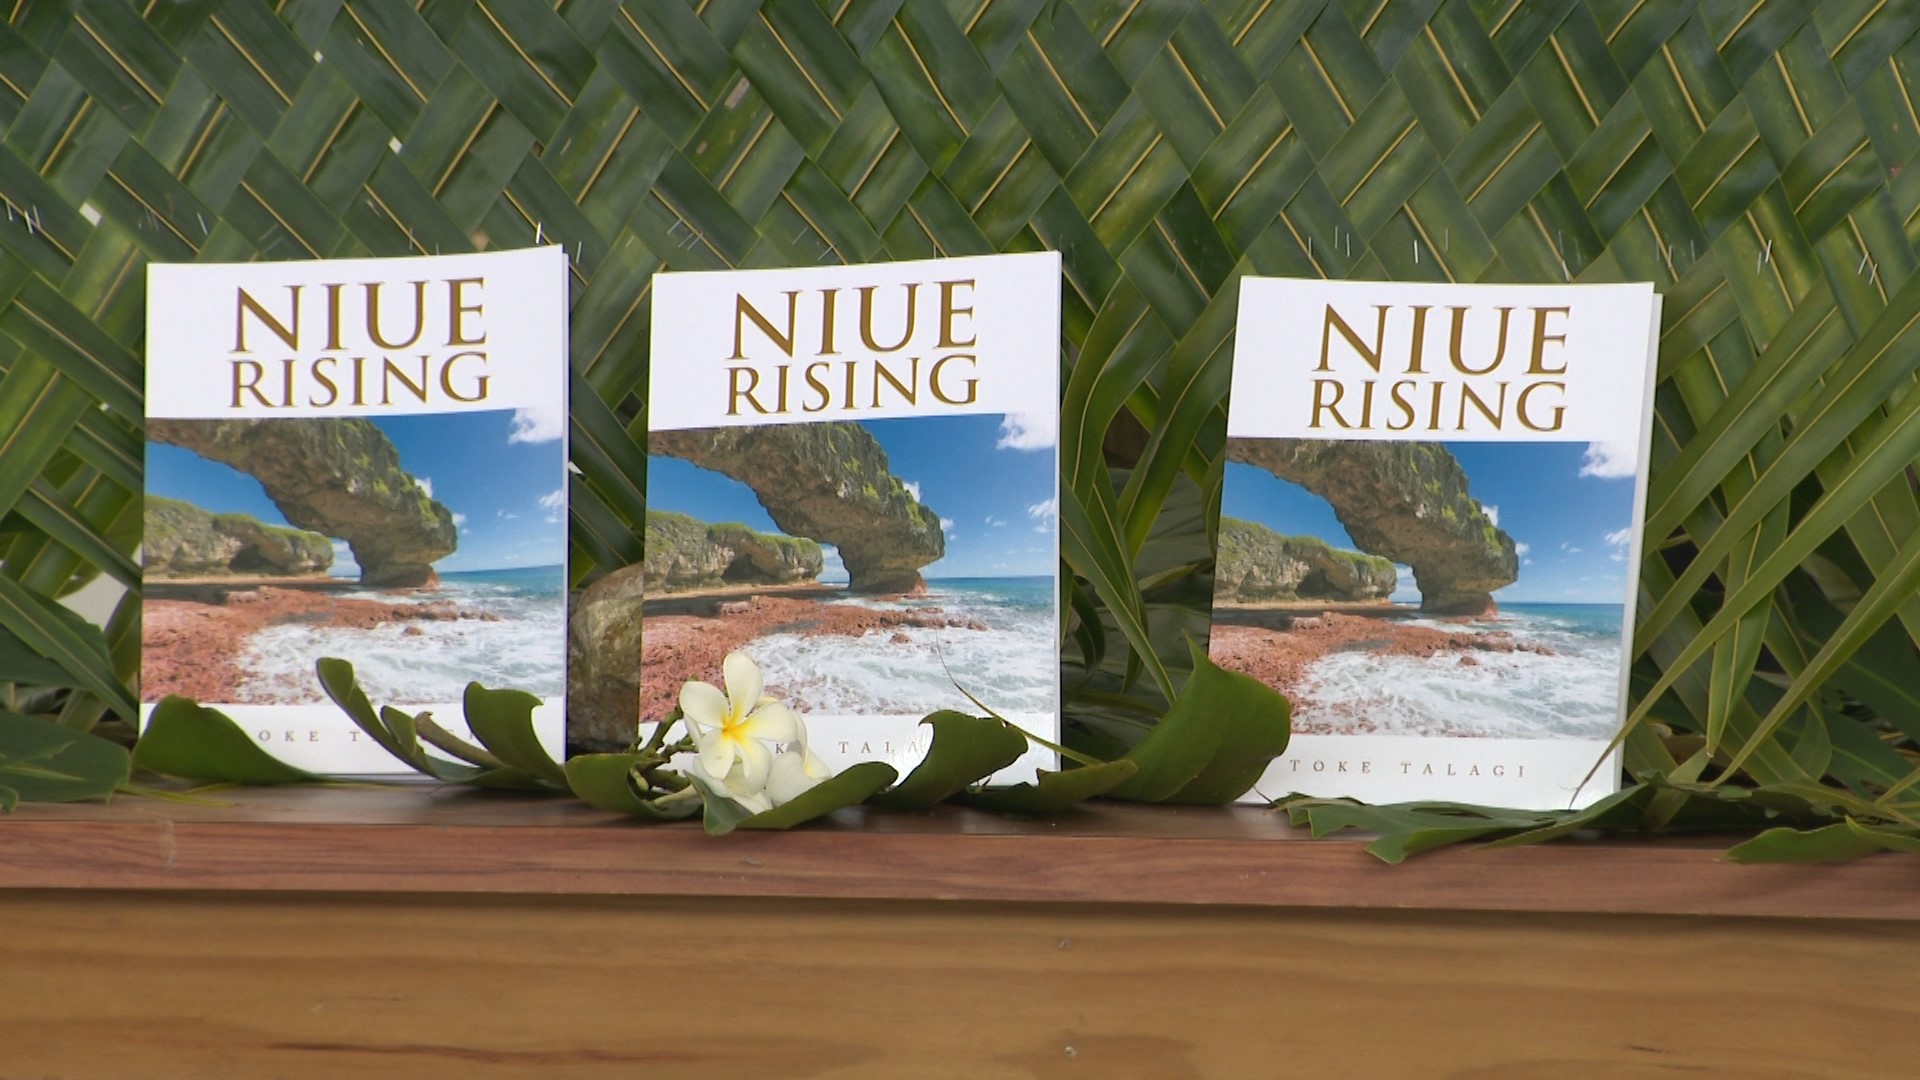 Premier Sir Toke Talagi's new book has been officially launched today.Called Niue Rising, this is a biography of Sir Toke Tufukia Talagi and his life in Niue to a knight of the realm. It…